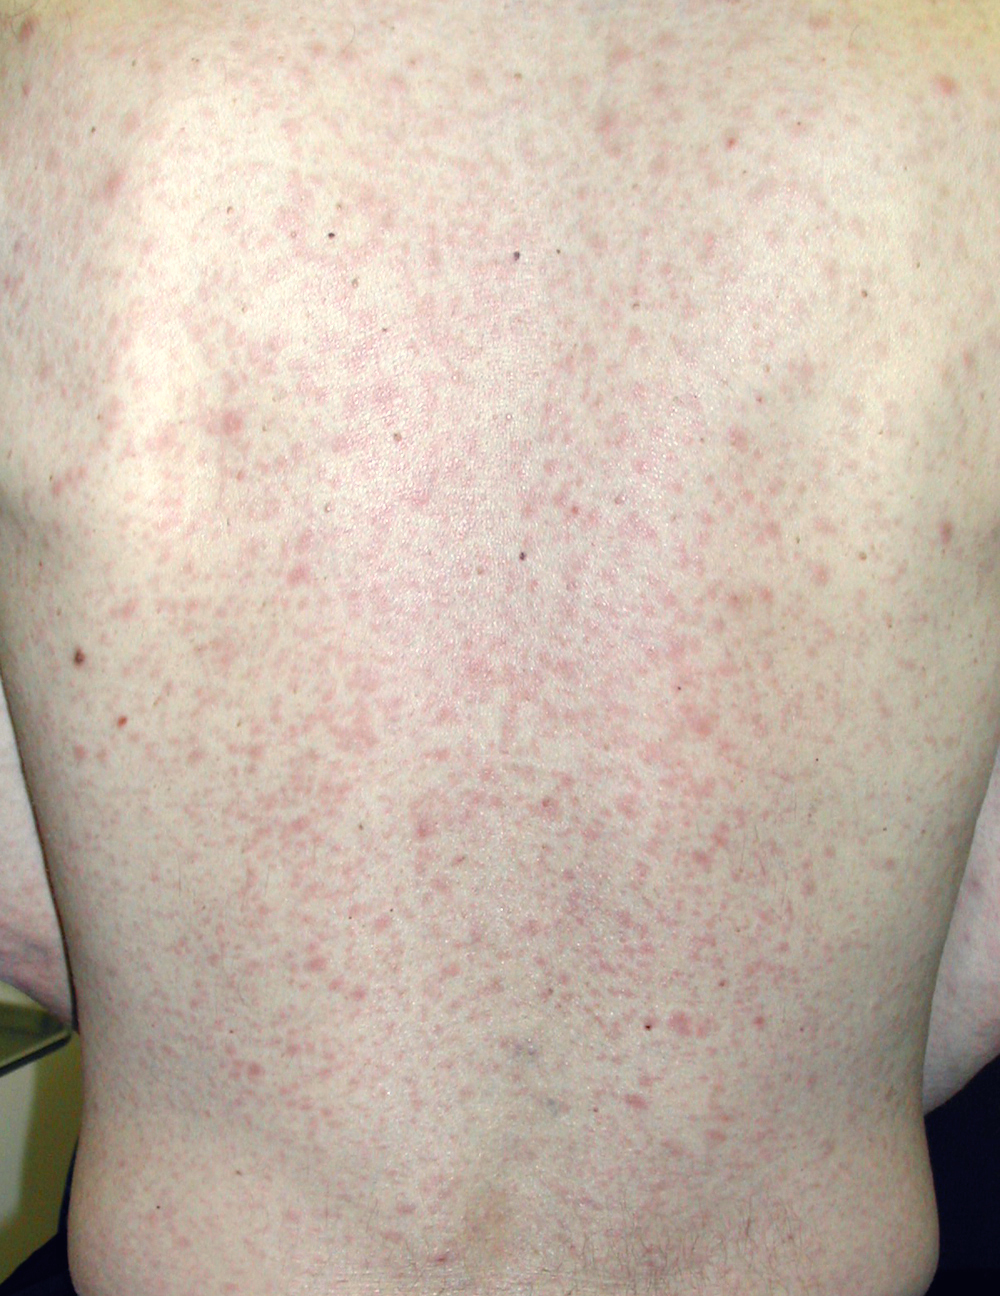 Primary Syphilis Rash Core Concepts -...